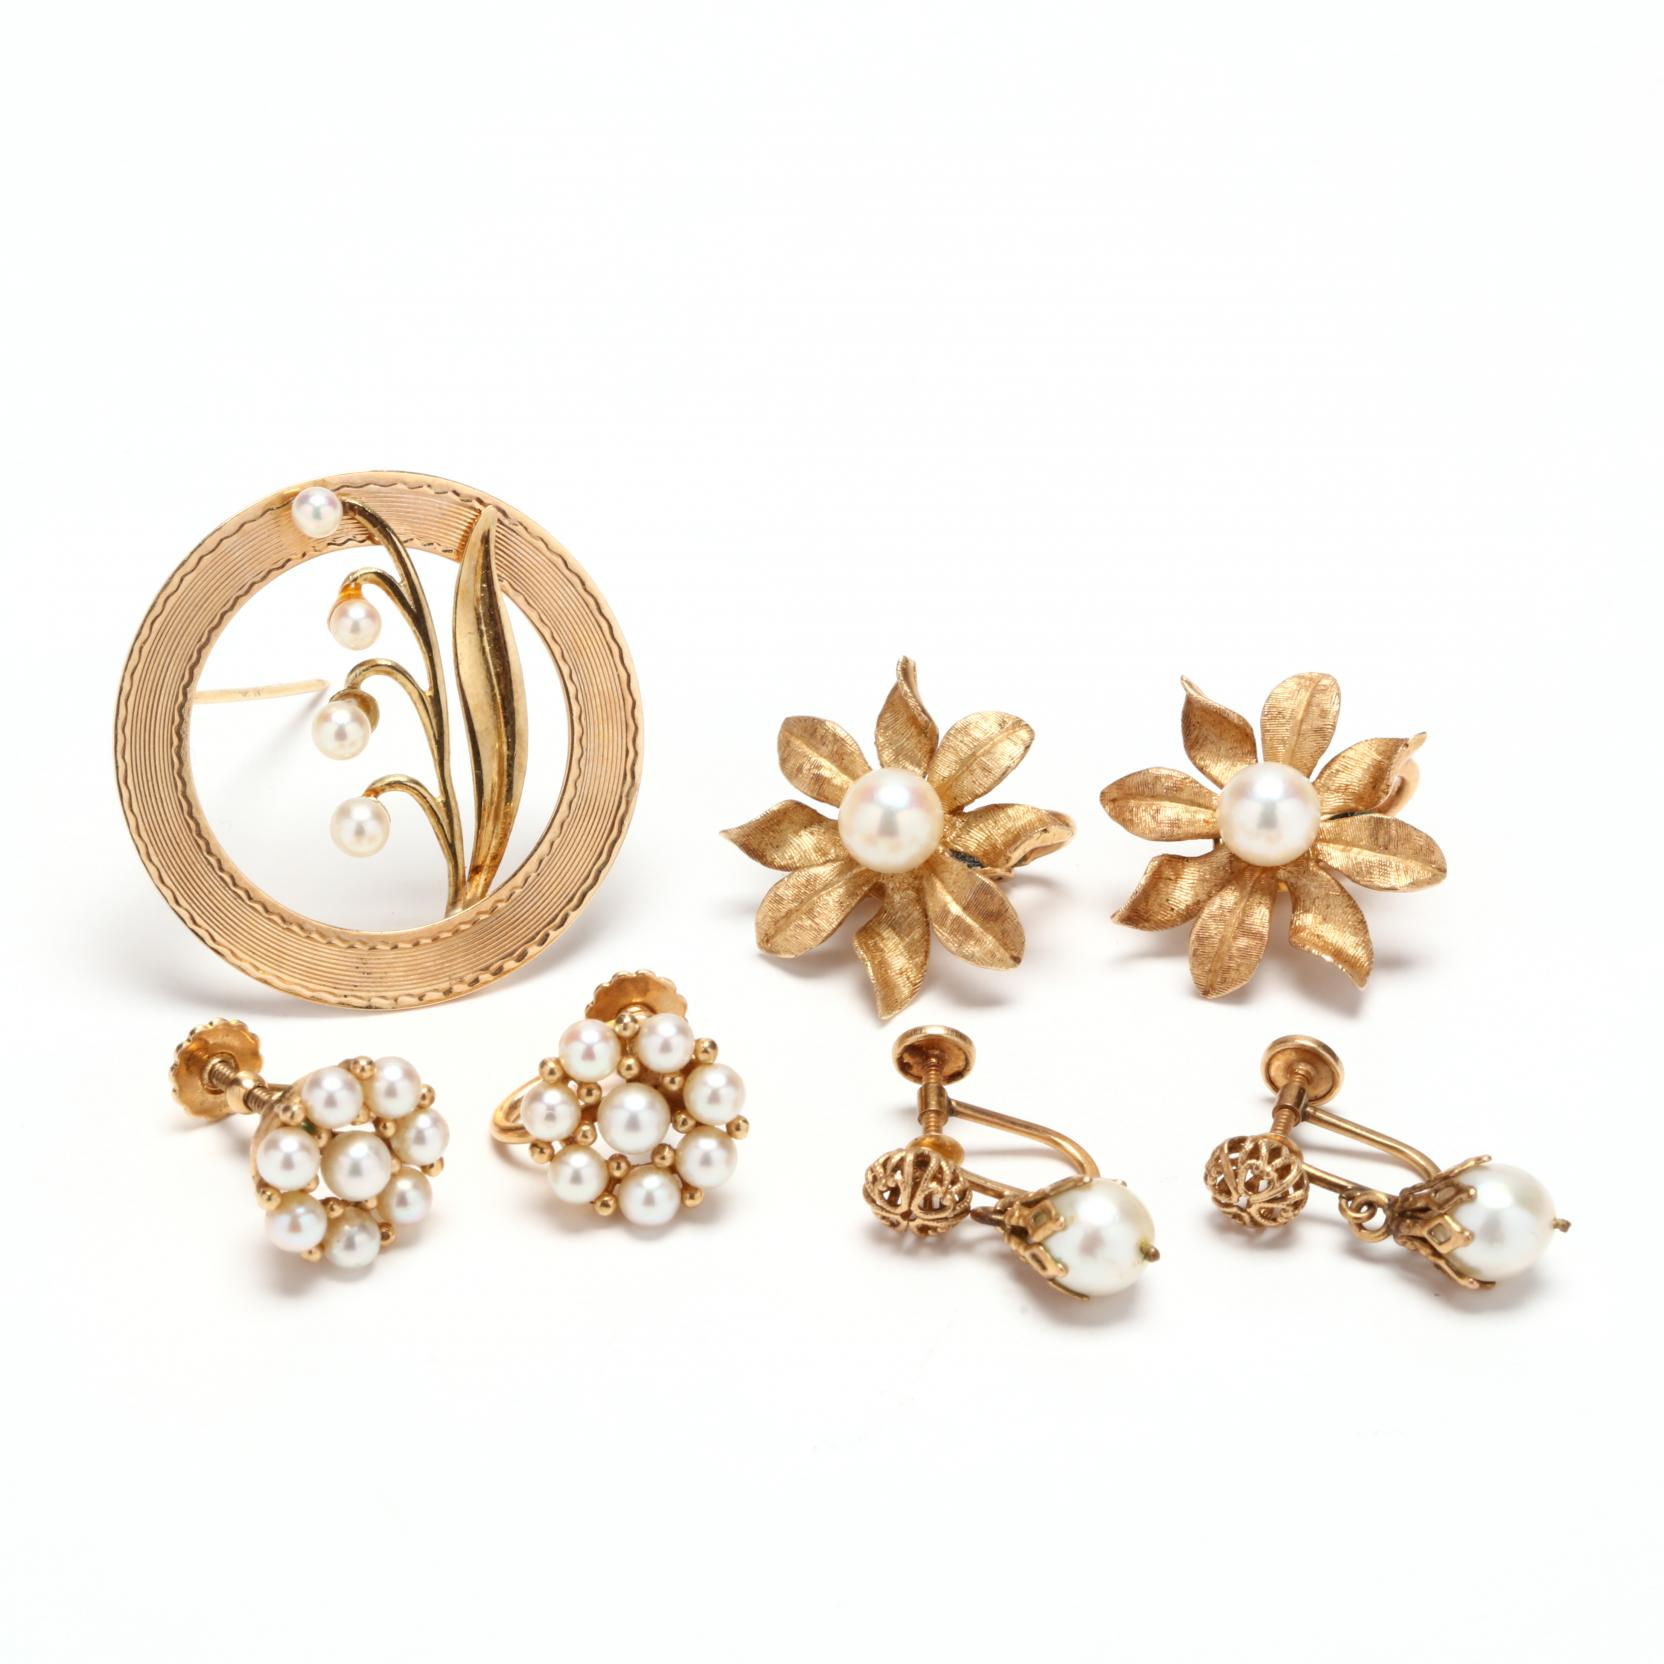 group-of-gold-and-pearl-jewelry